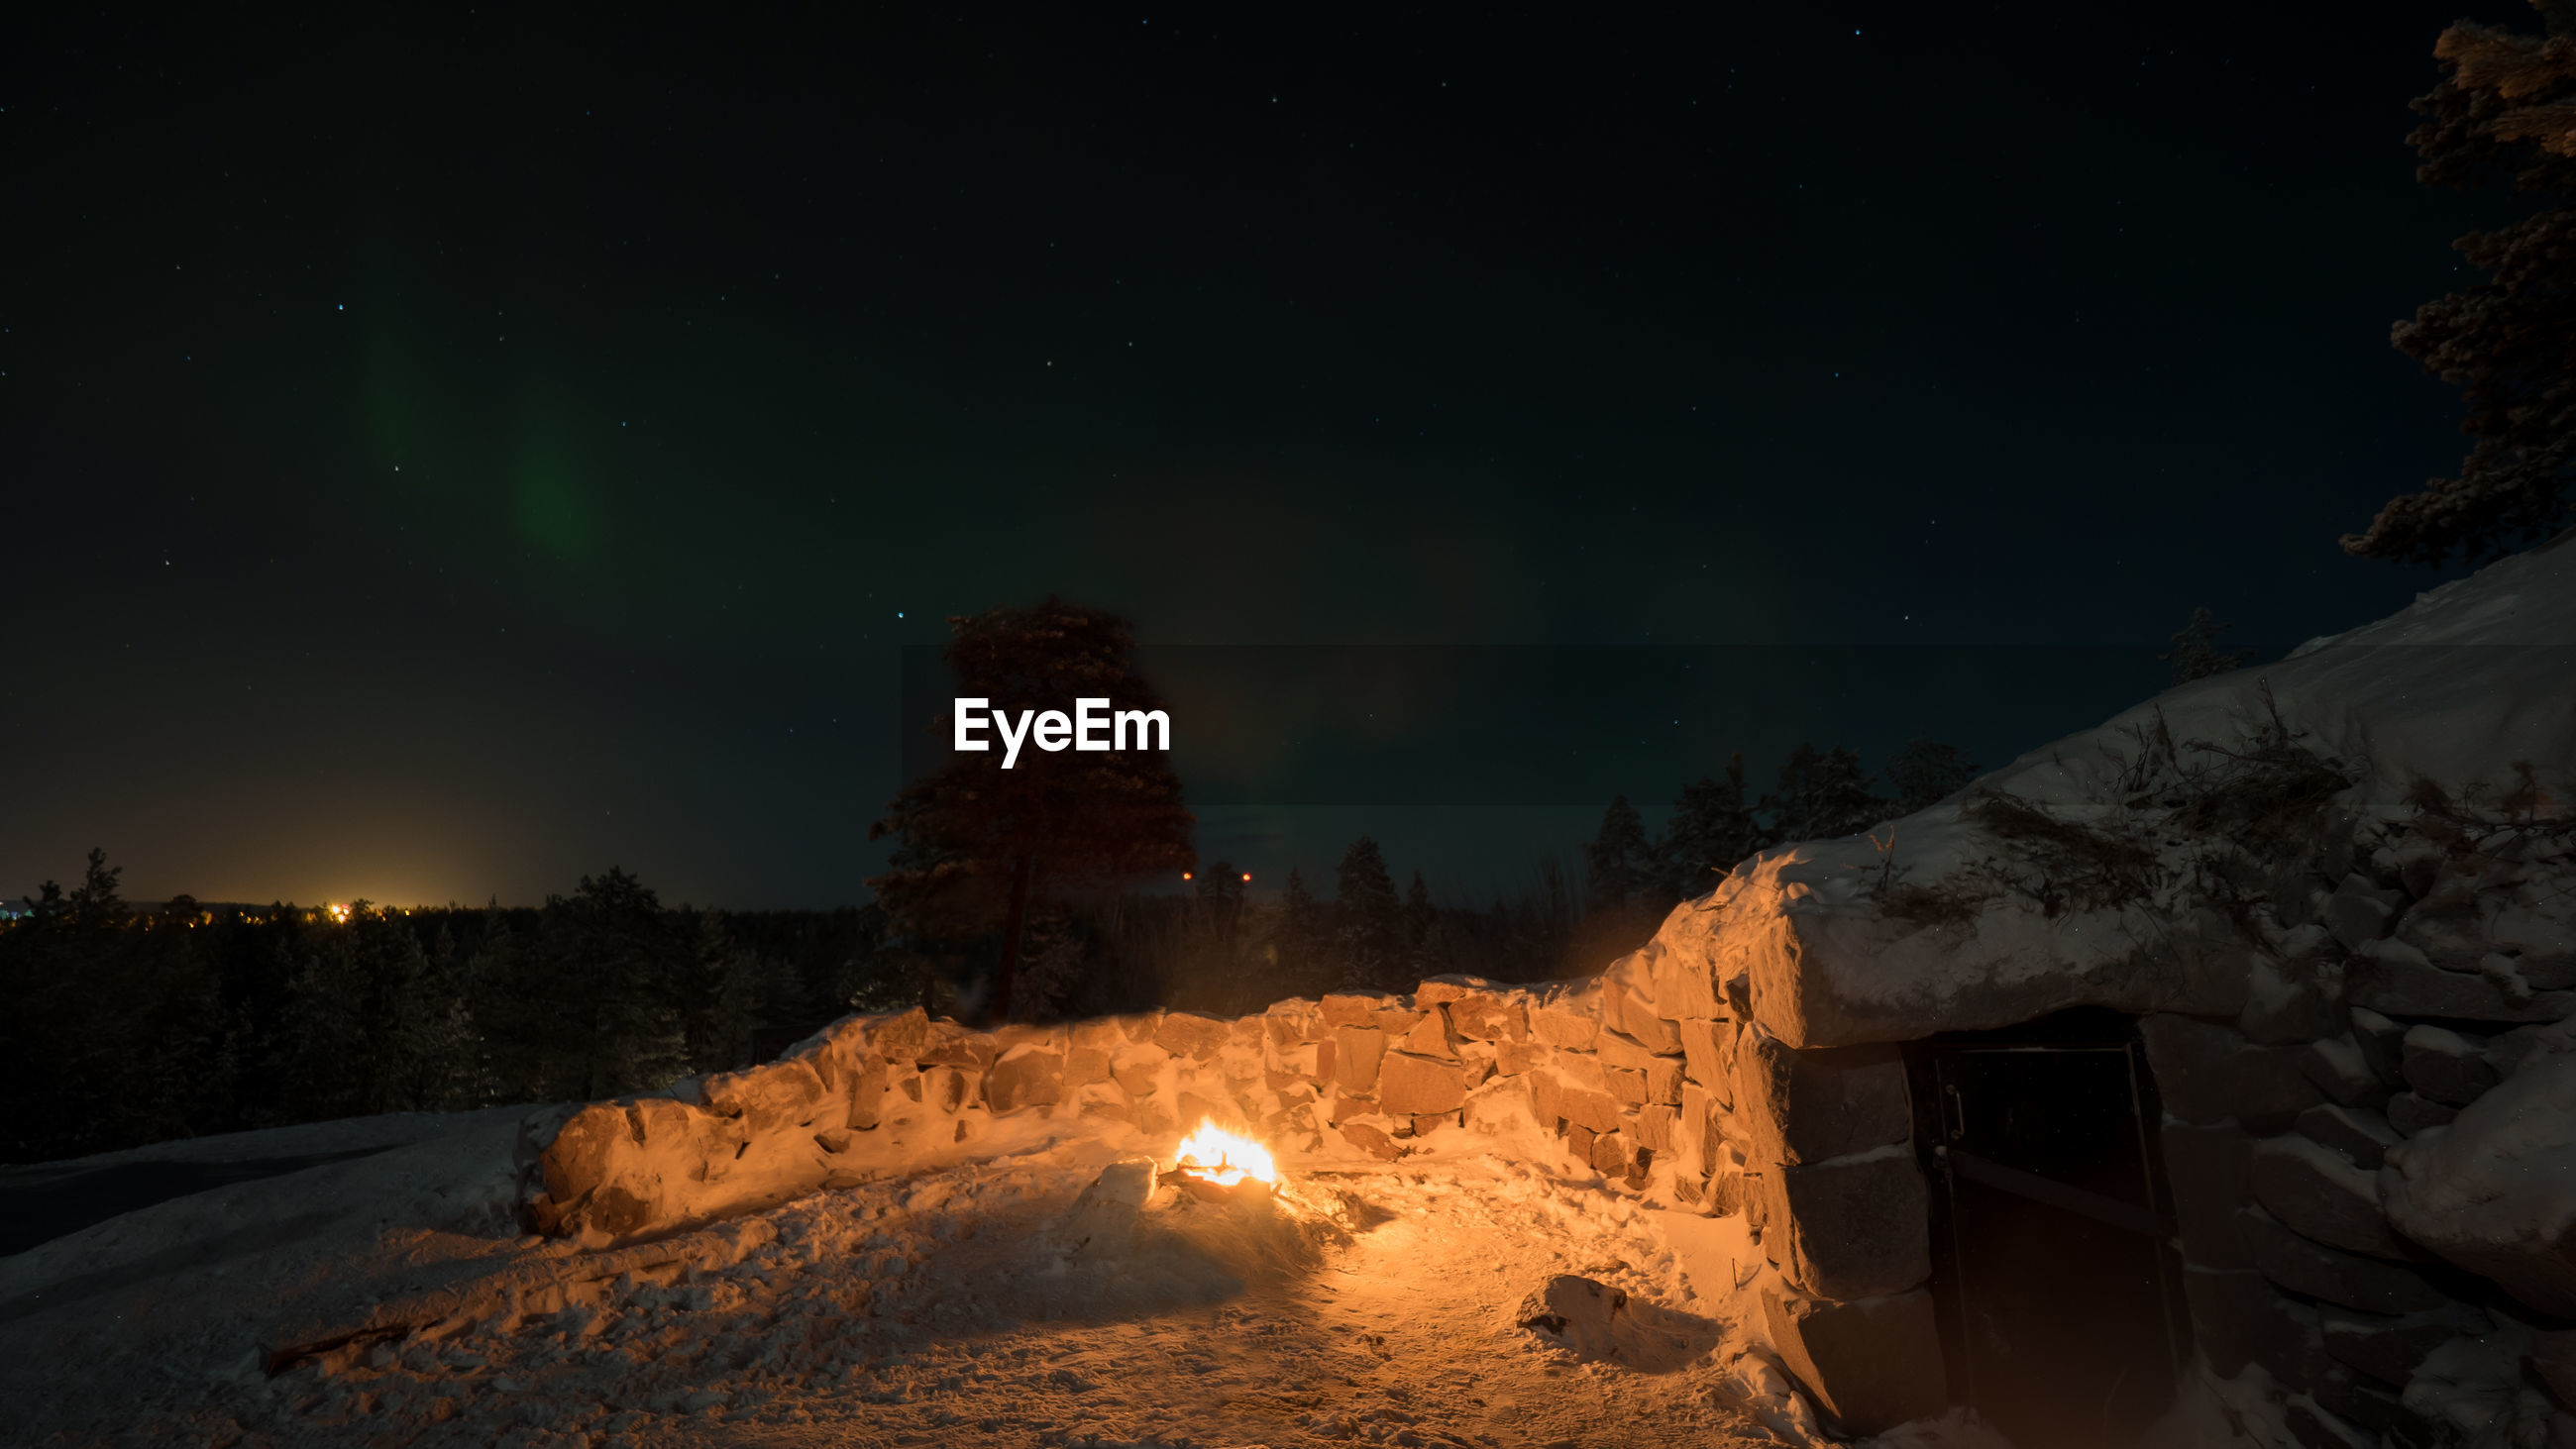 VIEW OF BONFIRE ON SNOW COVERED LAND AT NIGHT